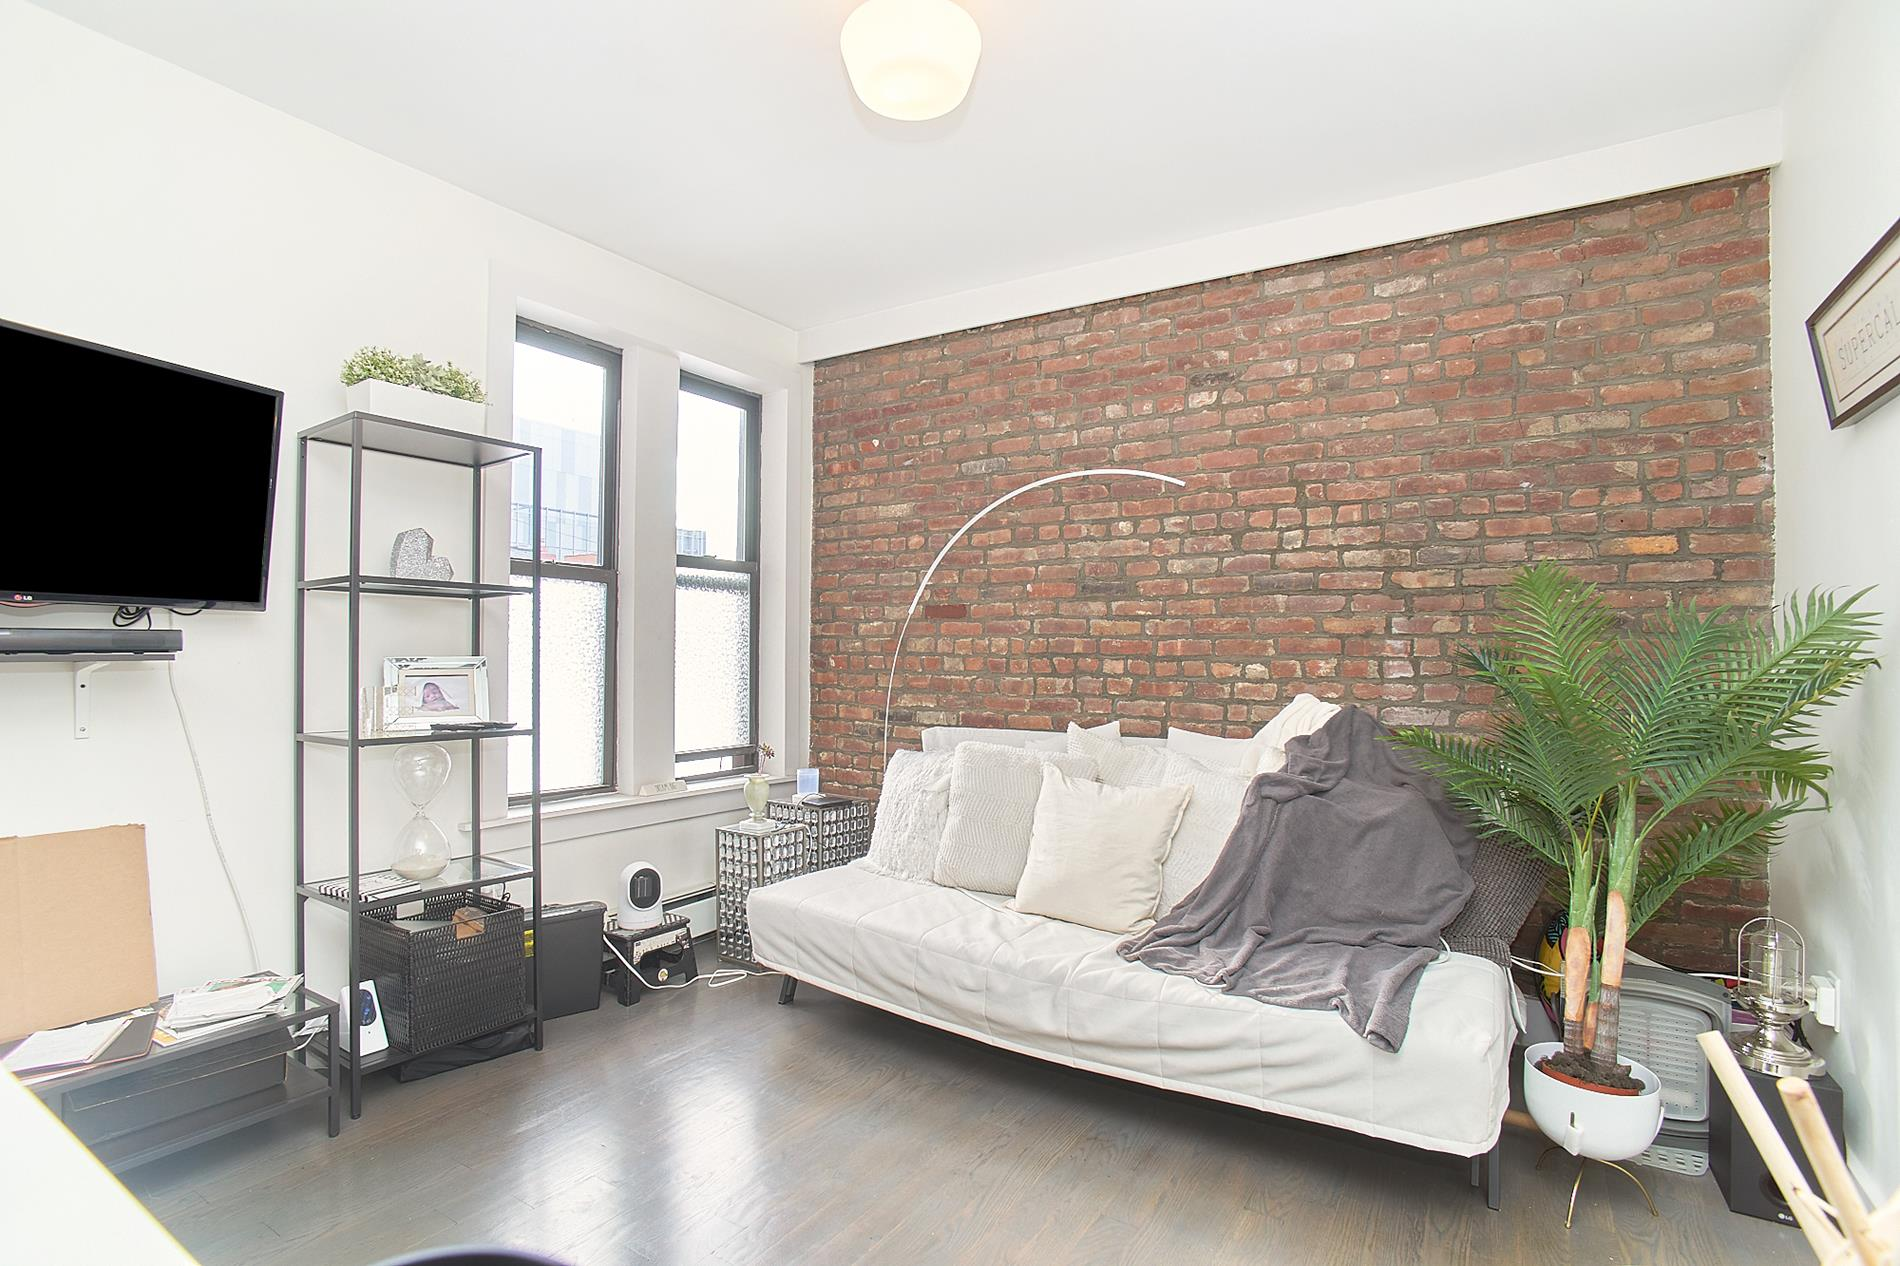 BACK ON THE MARKET! LAST DEAL FELL THROUGH!Welcome to Saint Ann's Court located in Central Harlem! A charming pre-war building with modern finishes and amenities. This unit also includes an additional storage space in the building.5K is a 455 sq-ft 1 bedroom filled with tons of natural sunlight. The living area features an open kitchen with stainless steel appliances, brick exposure & generous space for comfortable living. The bedroom comfortably fits a queen sized bed with furniture. You'll find 3 large closets with the perfect amount of storage space for the unit. A modern bathroom with a rainfall showerhead.Saint Ann's Court is a beautifully renovated condo conversion with elevator & laundry in the building. The building features a gym, bike room and a beautiful shared courtyard.